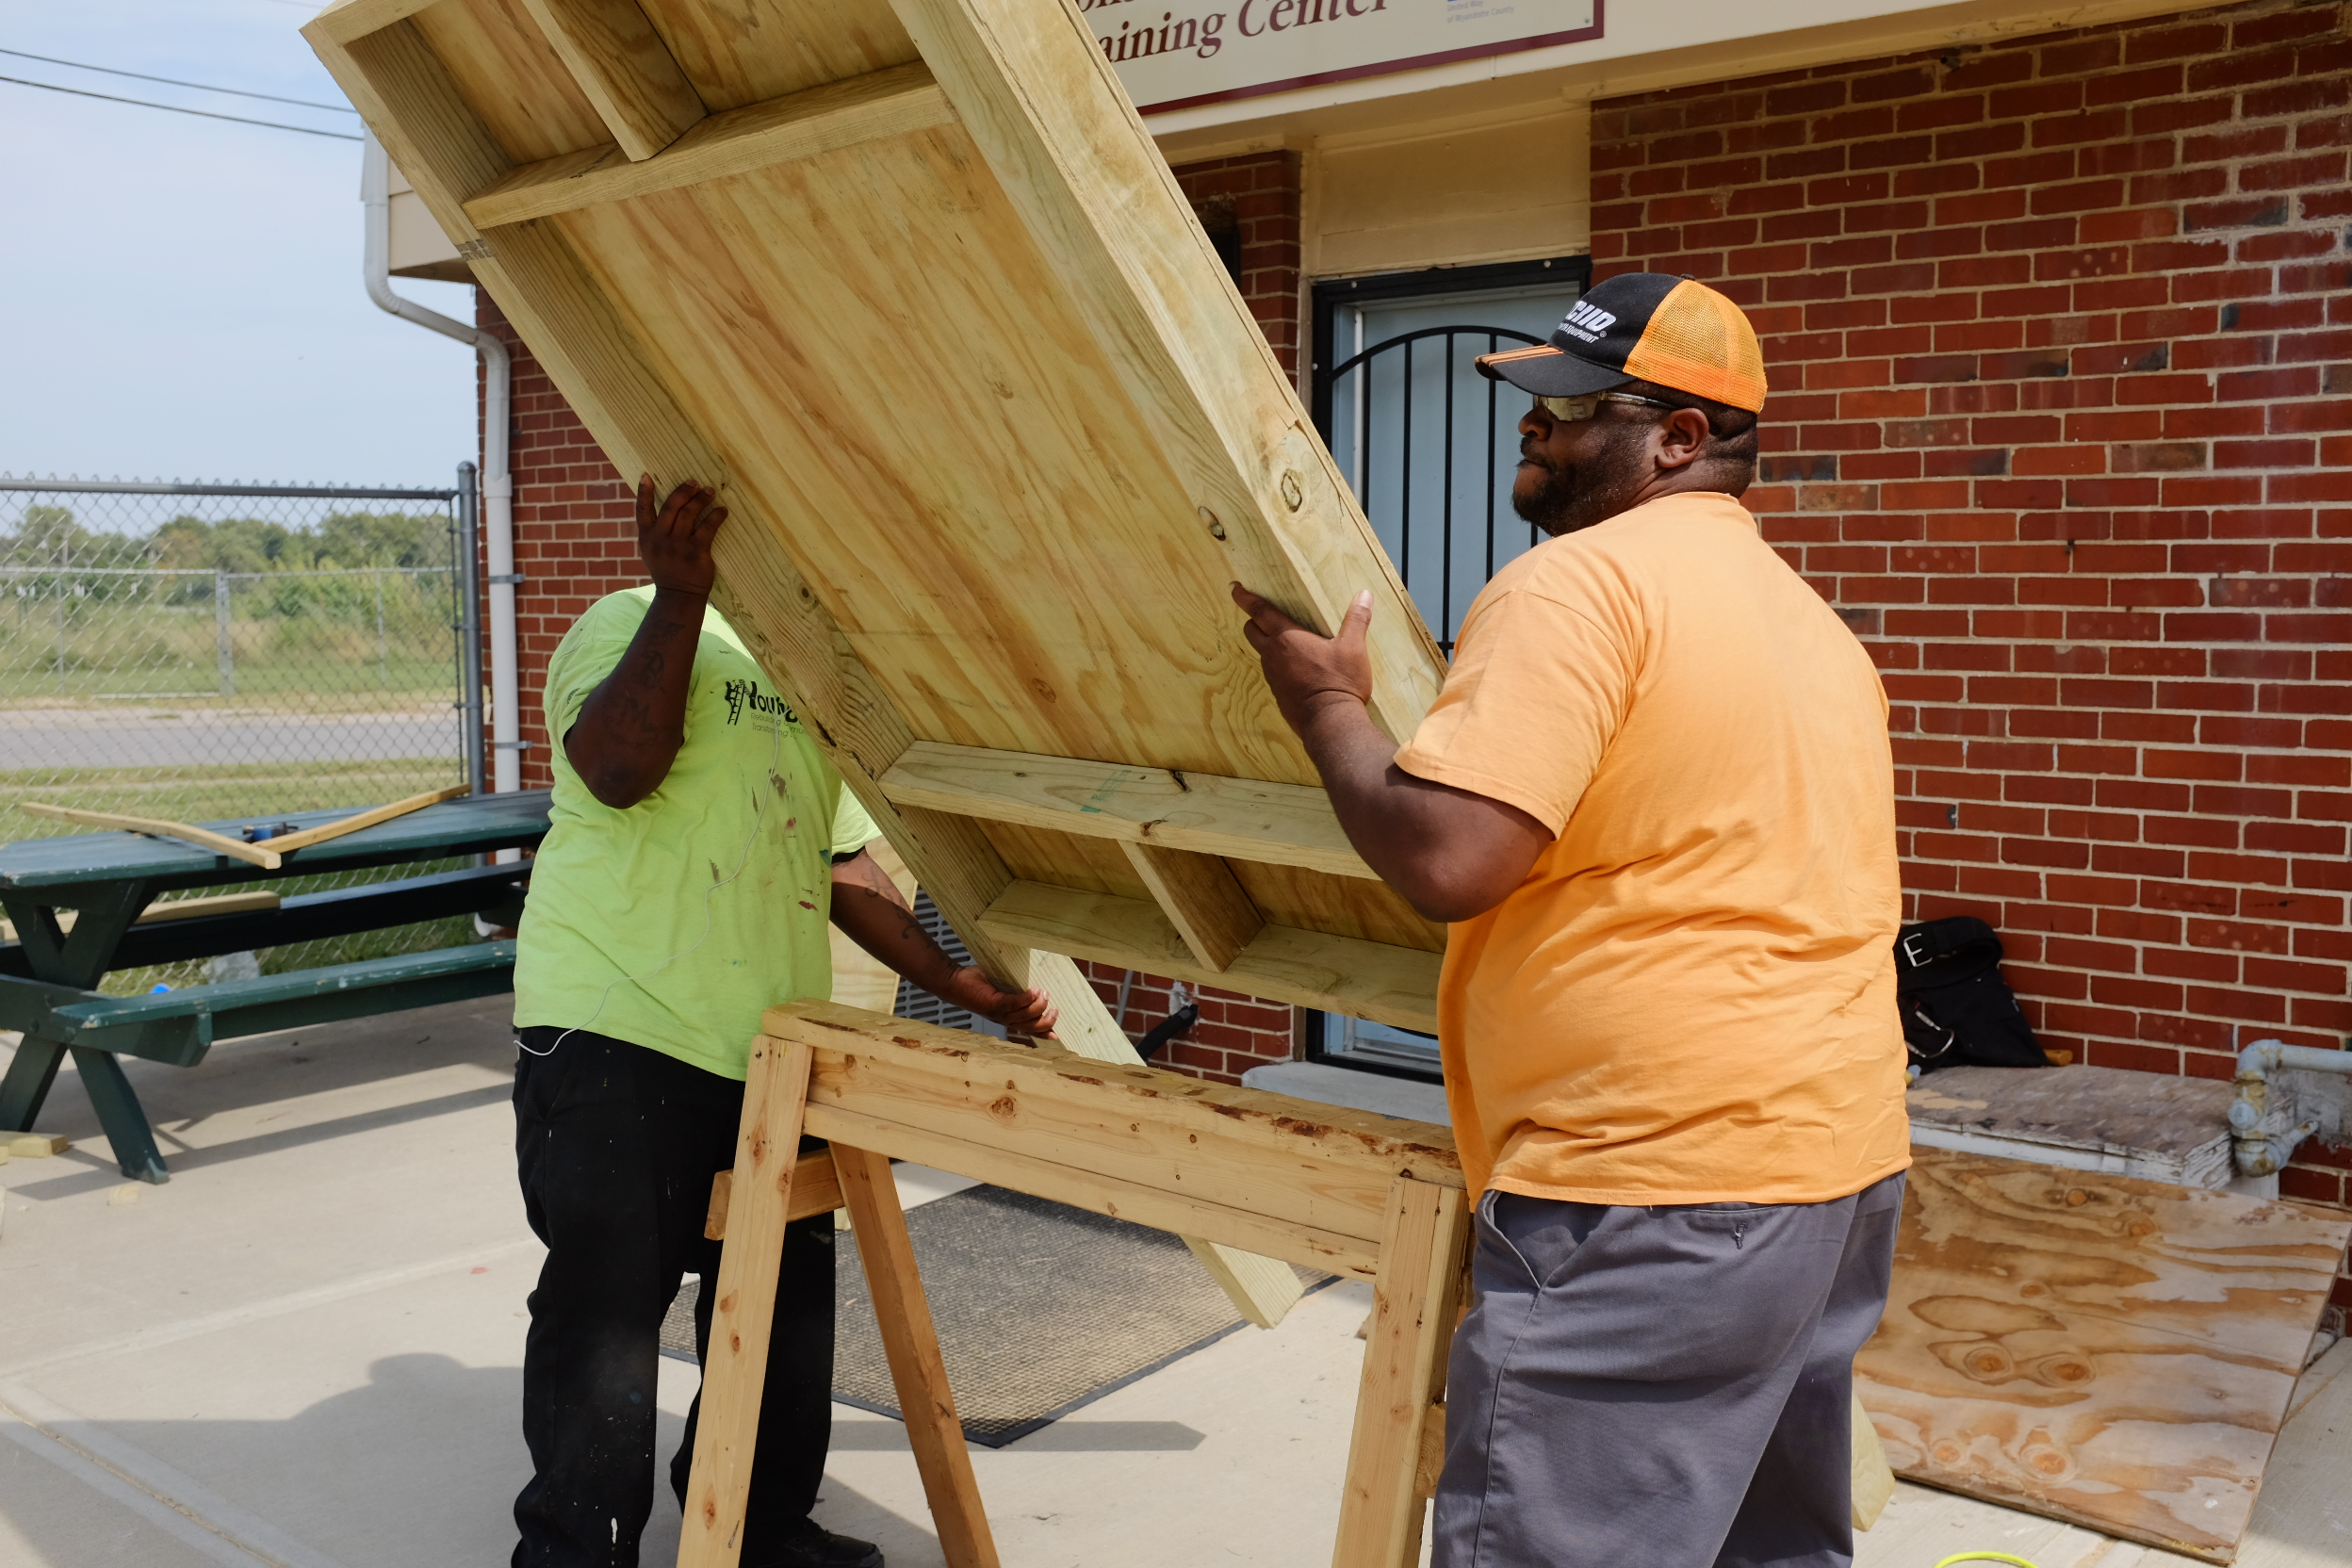 YouthBuild used the park elements as an opportunity for skills training.